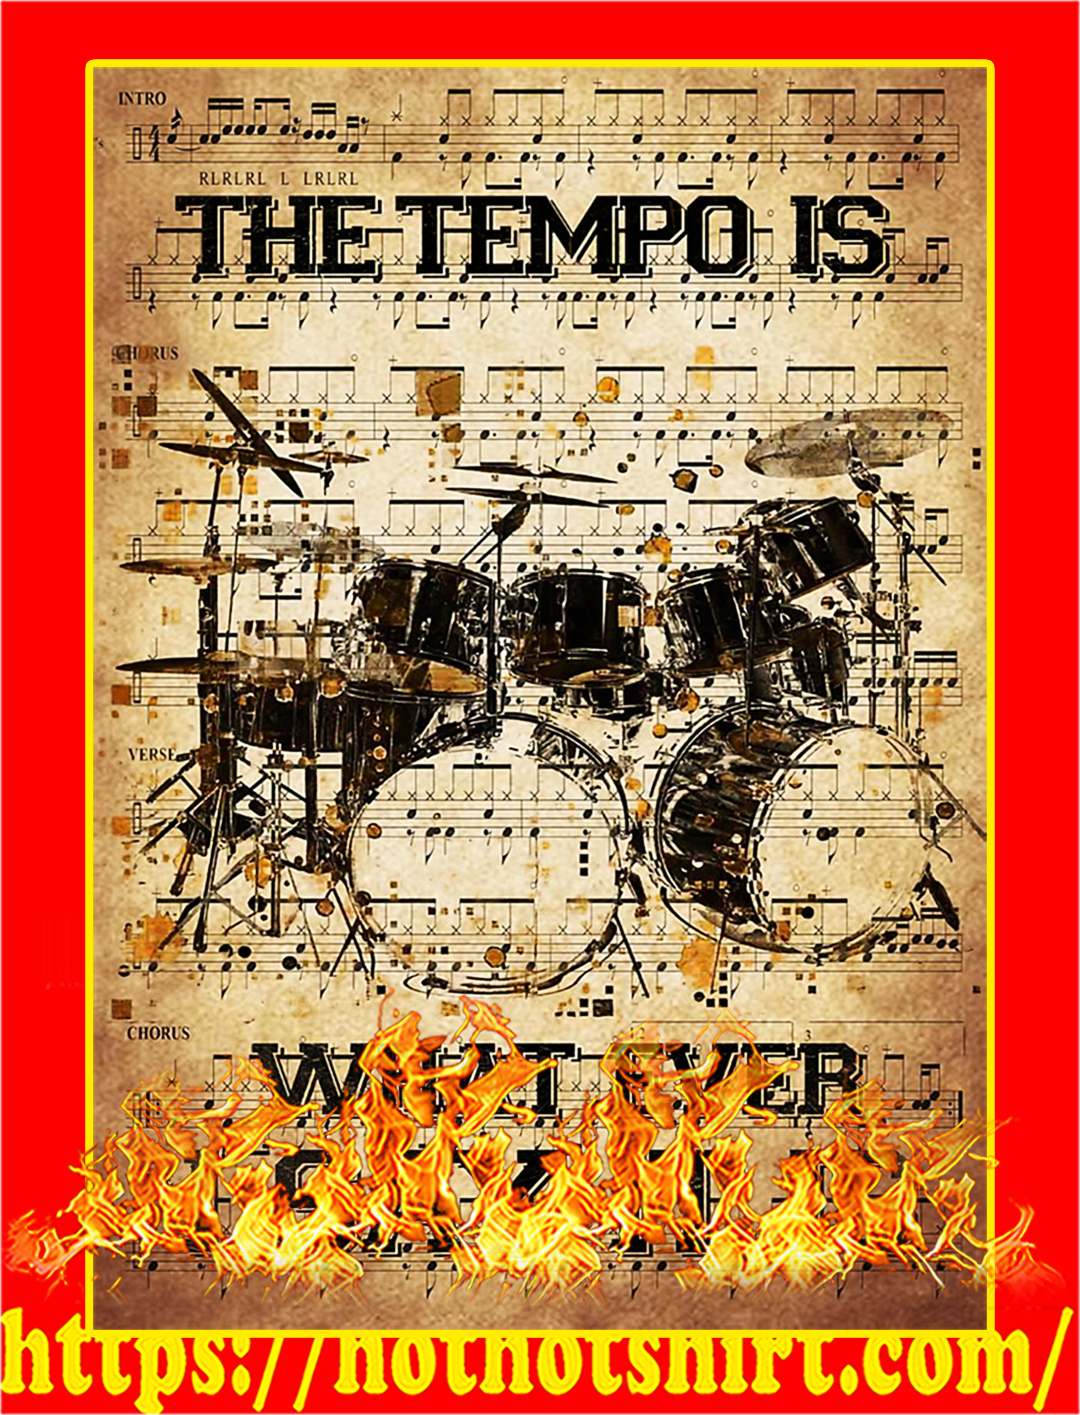 The tempo is what ever i say it is poster - A1